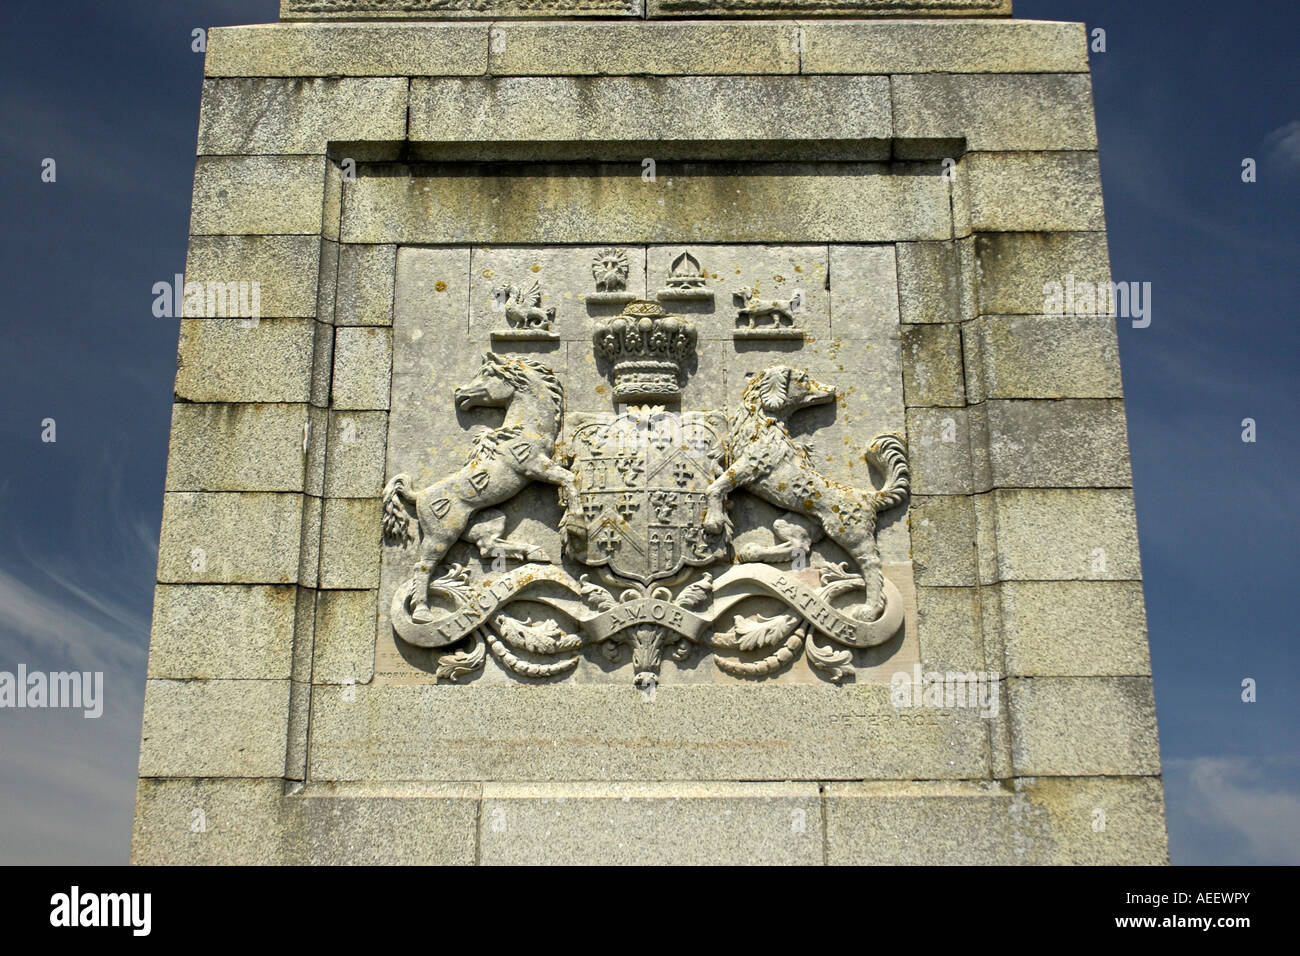 The coat of arms on the Lord Yarborough Monument, Bembridge Down / Culver Cliff, Isle of Wight, England, UK. Stock Photo